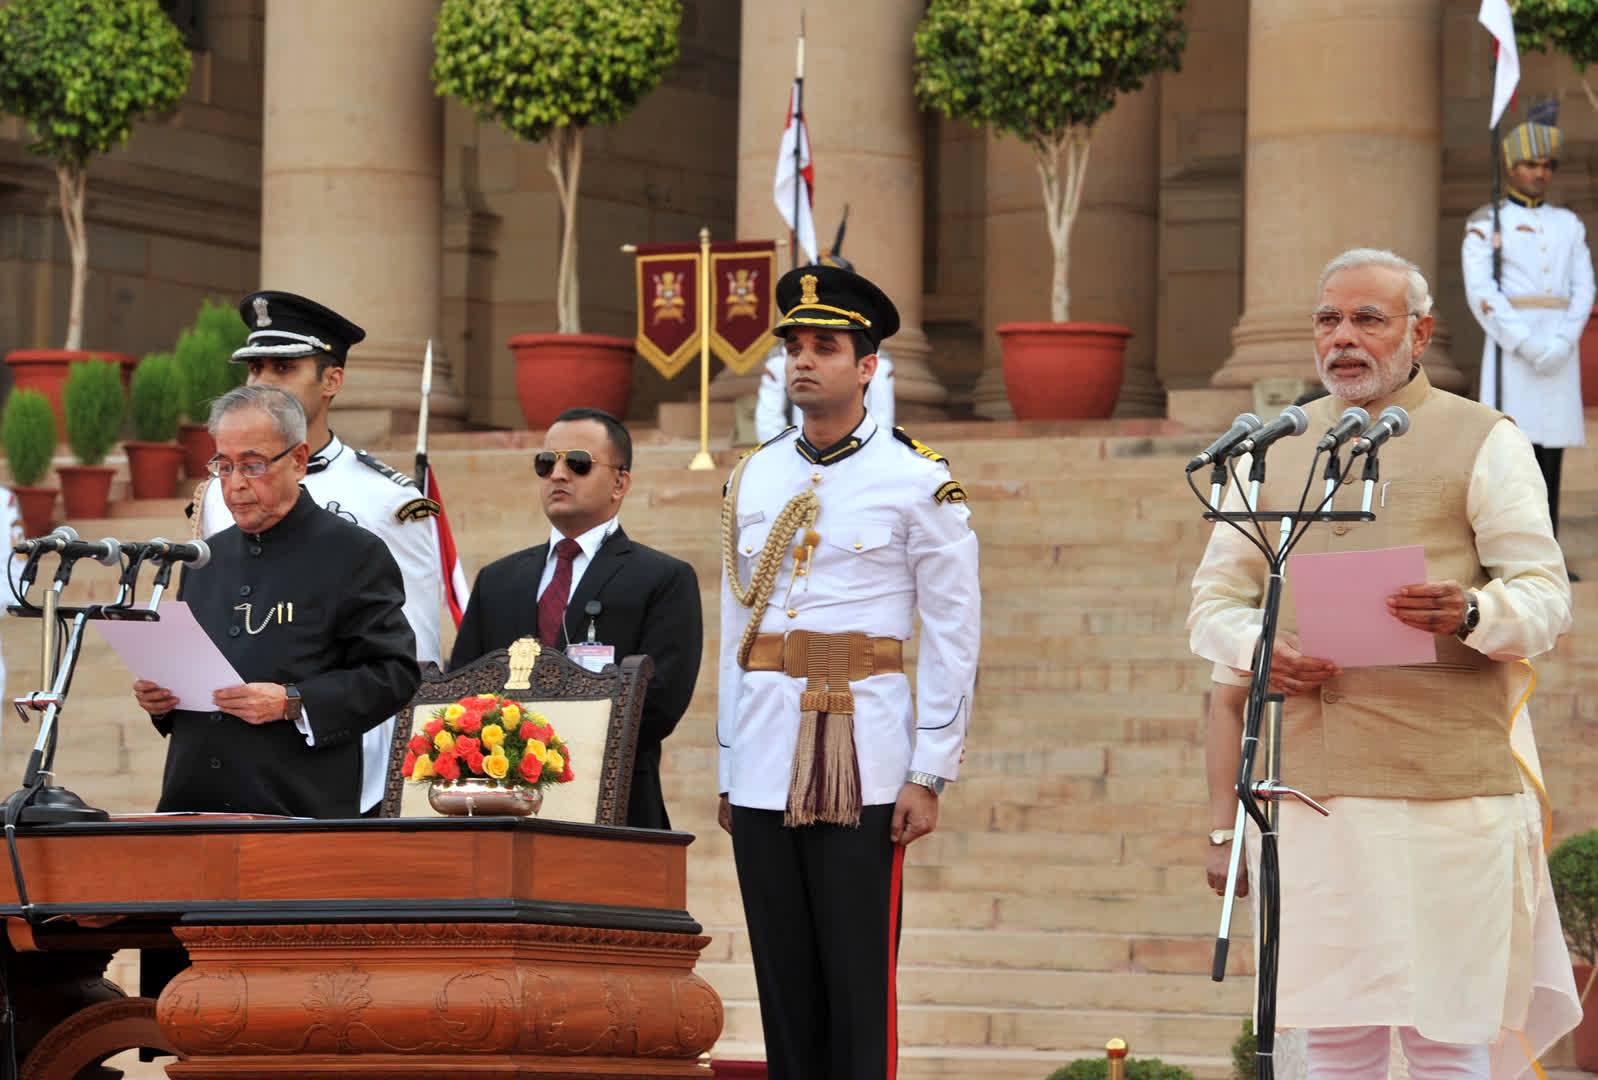 First swearing-in ceremony of Narendra Modi